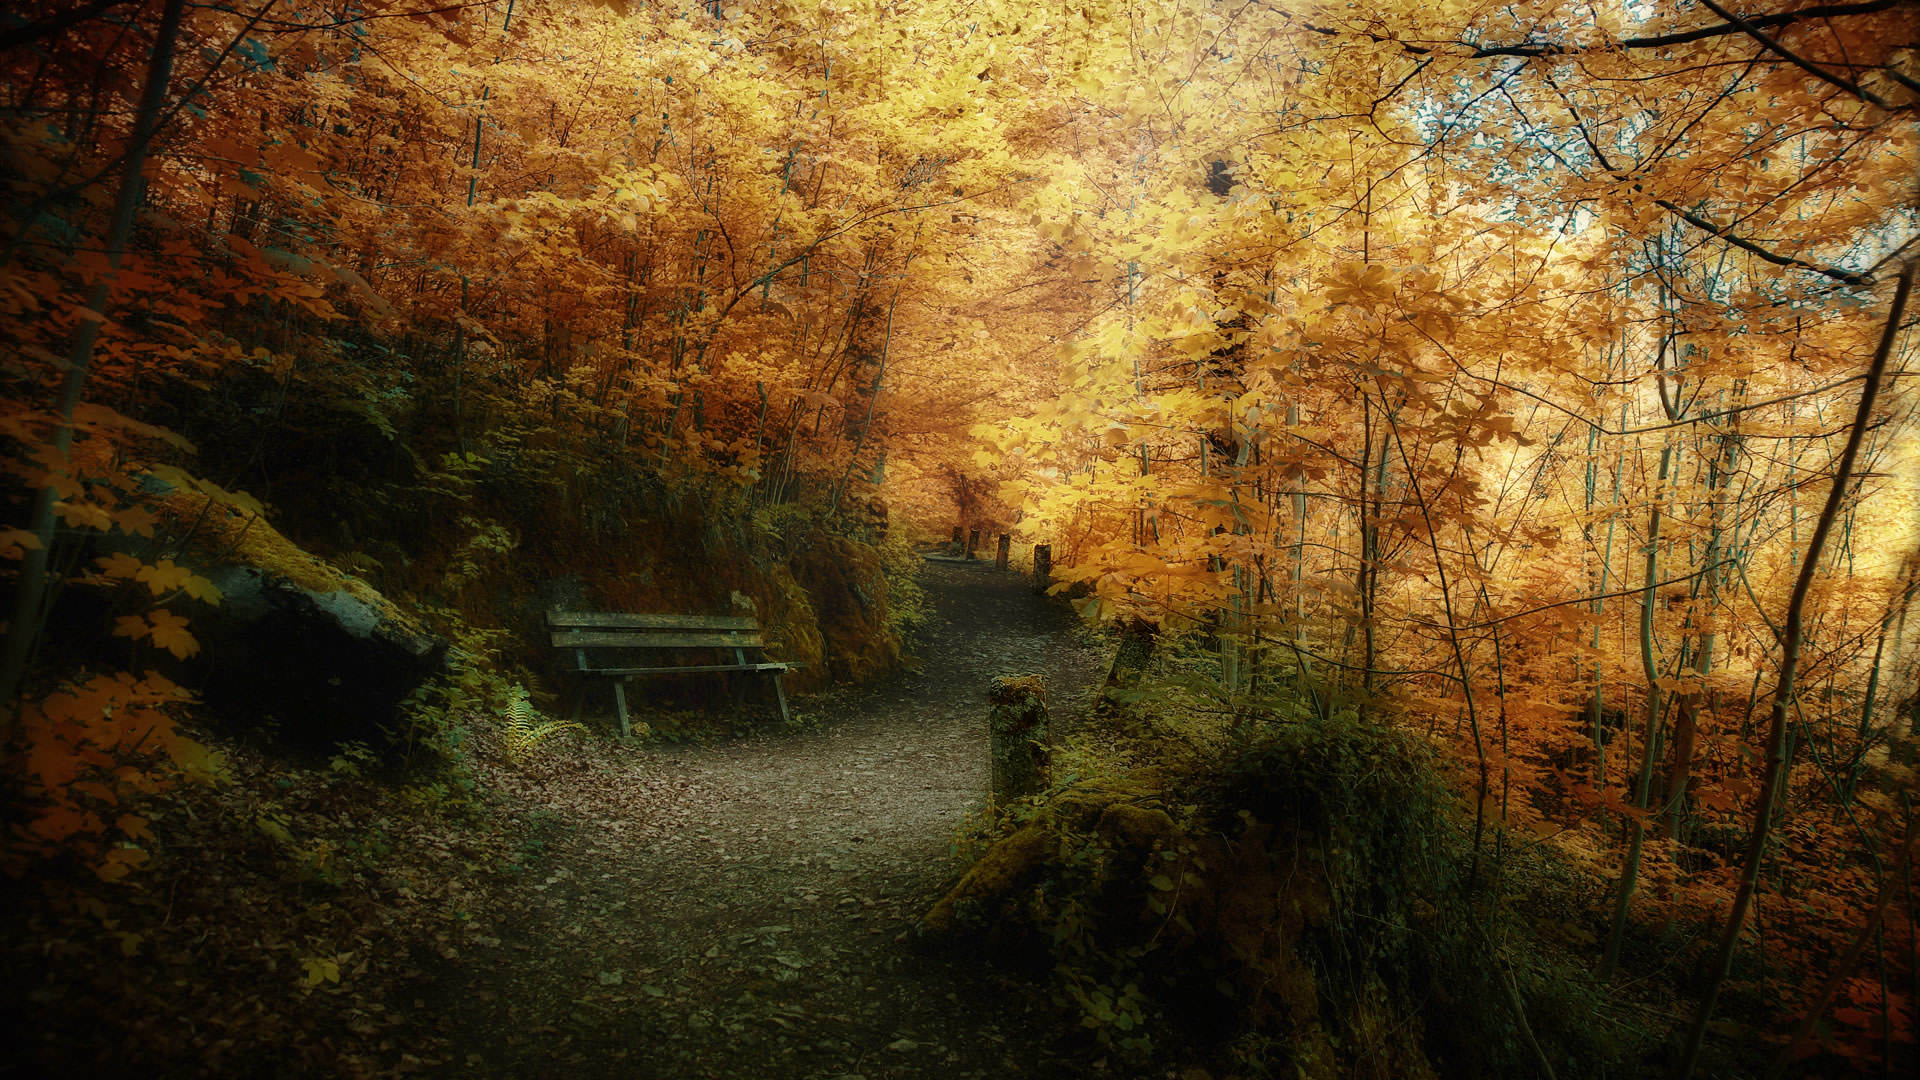 Wallpapers autumn wallpaper leaves nature background 1920x1080